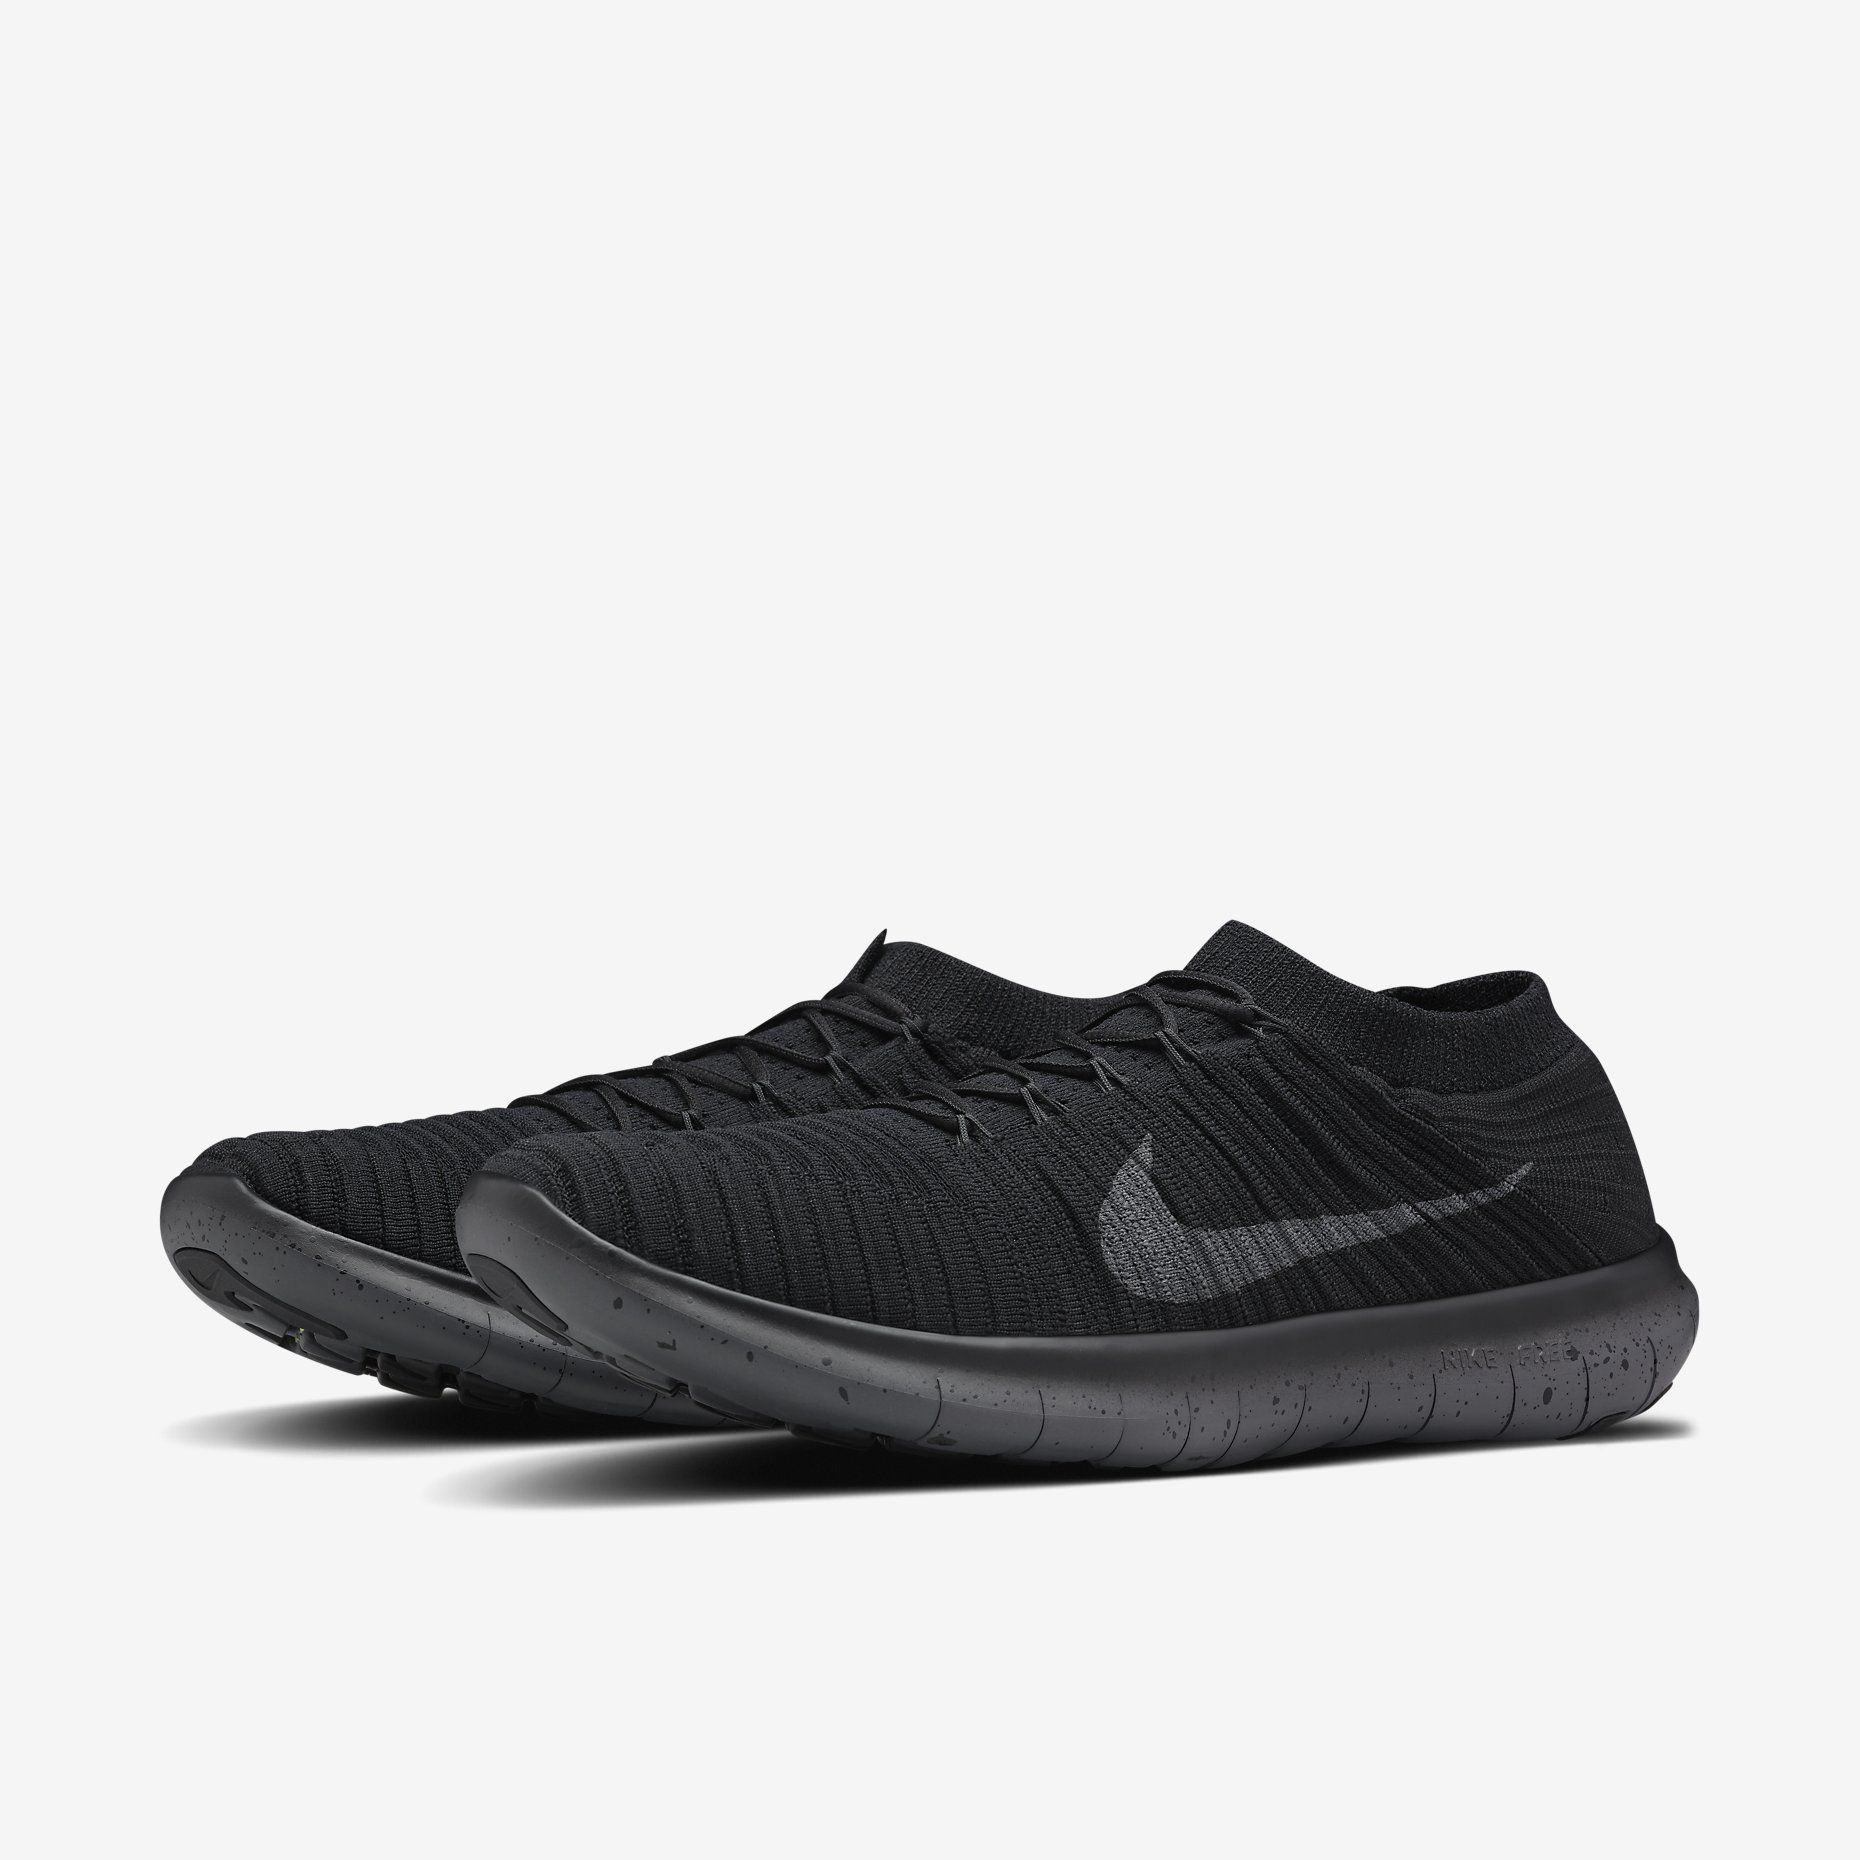 Fascinating Nike Solarsoft Moccasin Trainers Black O33o8498